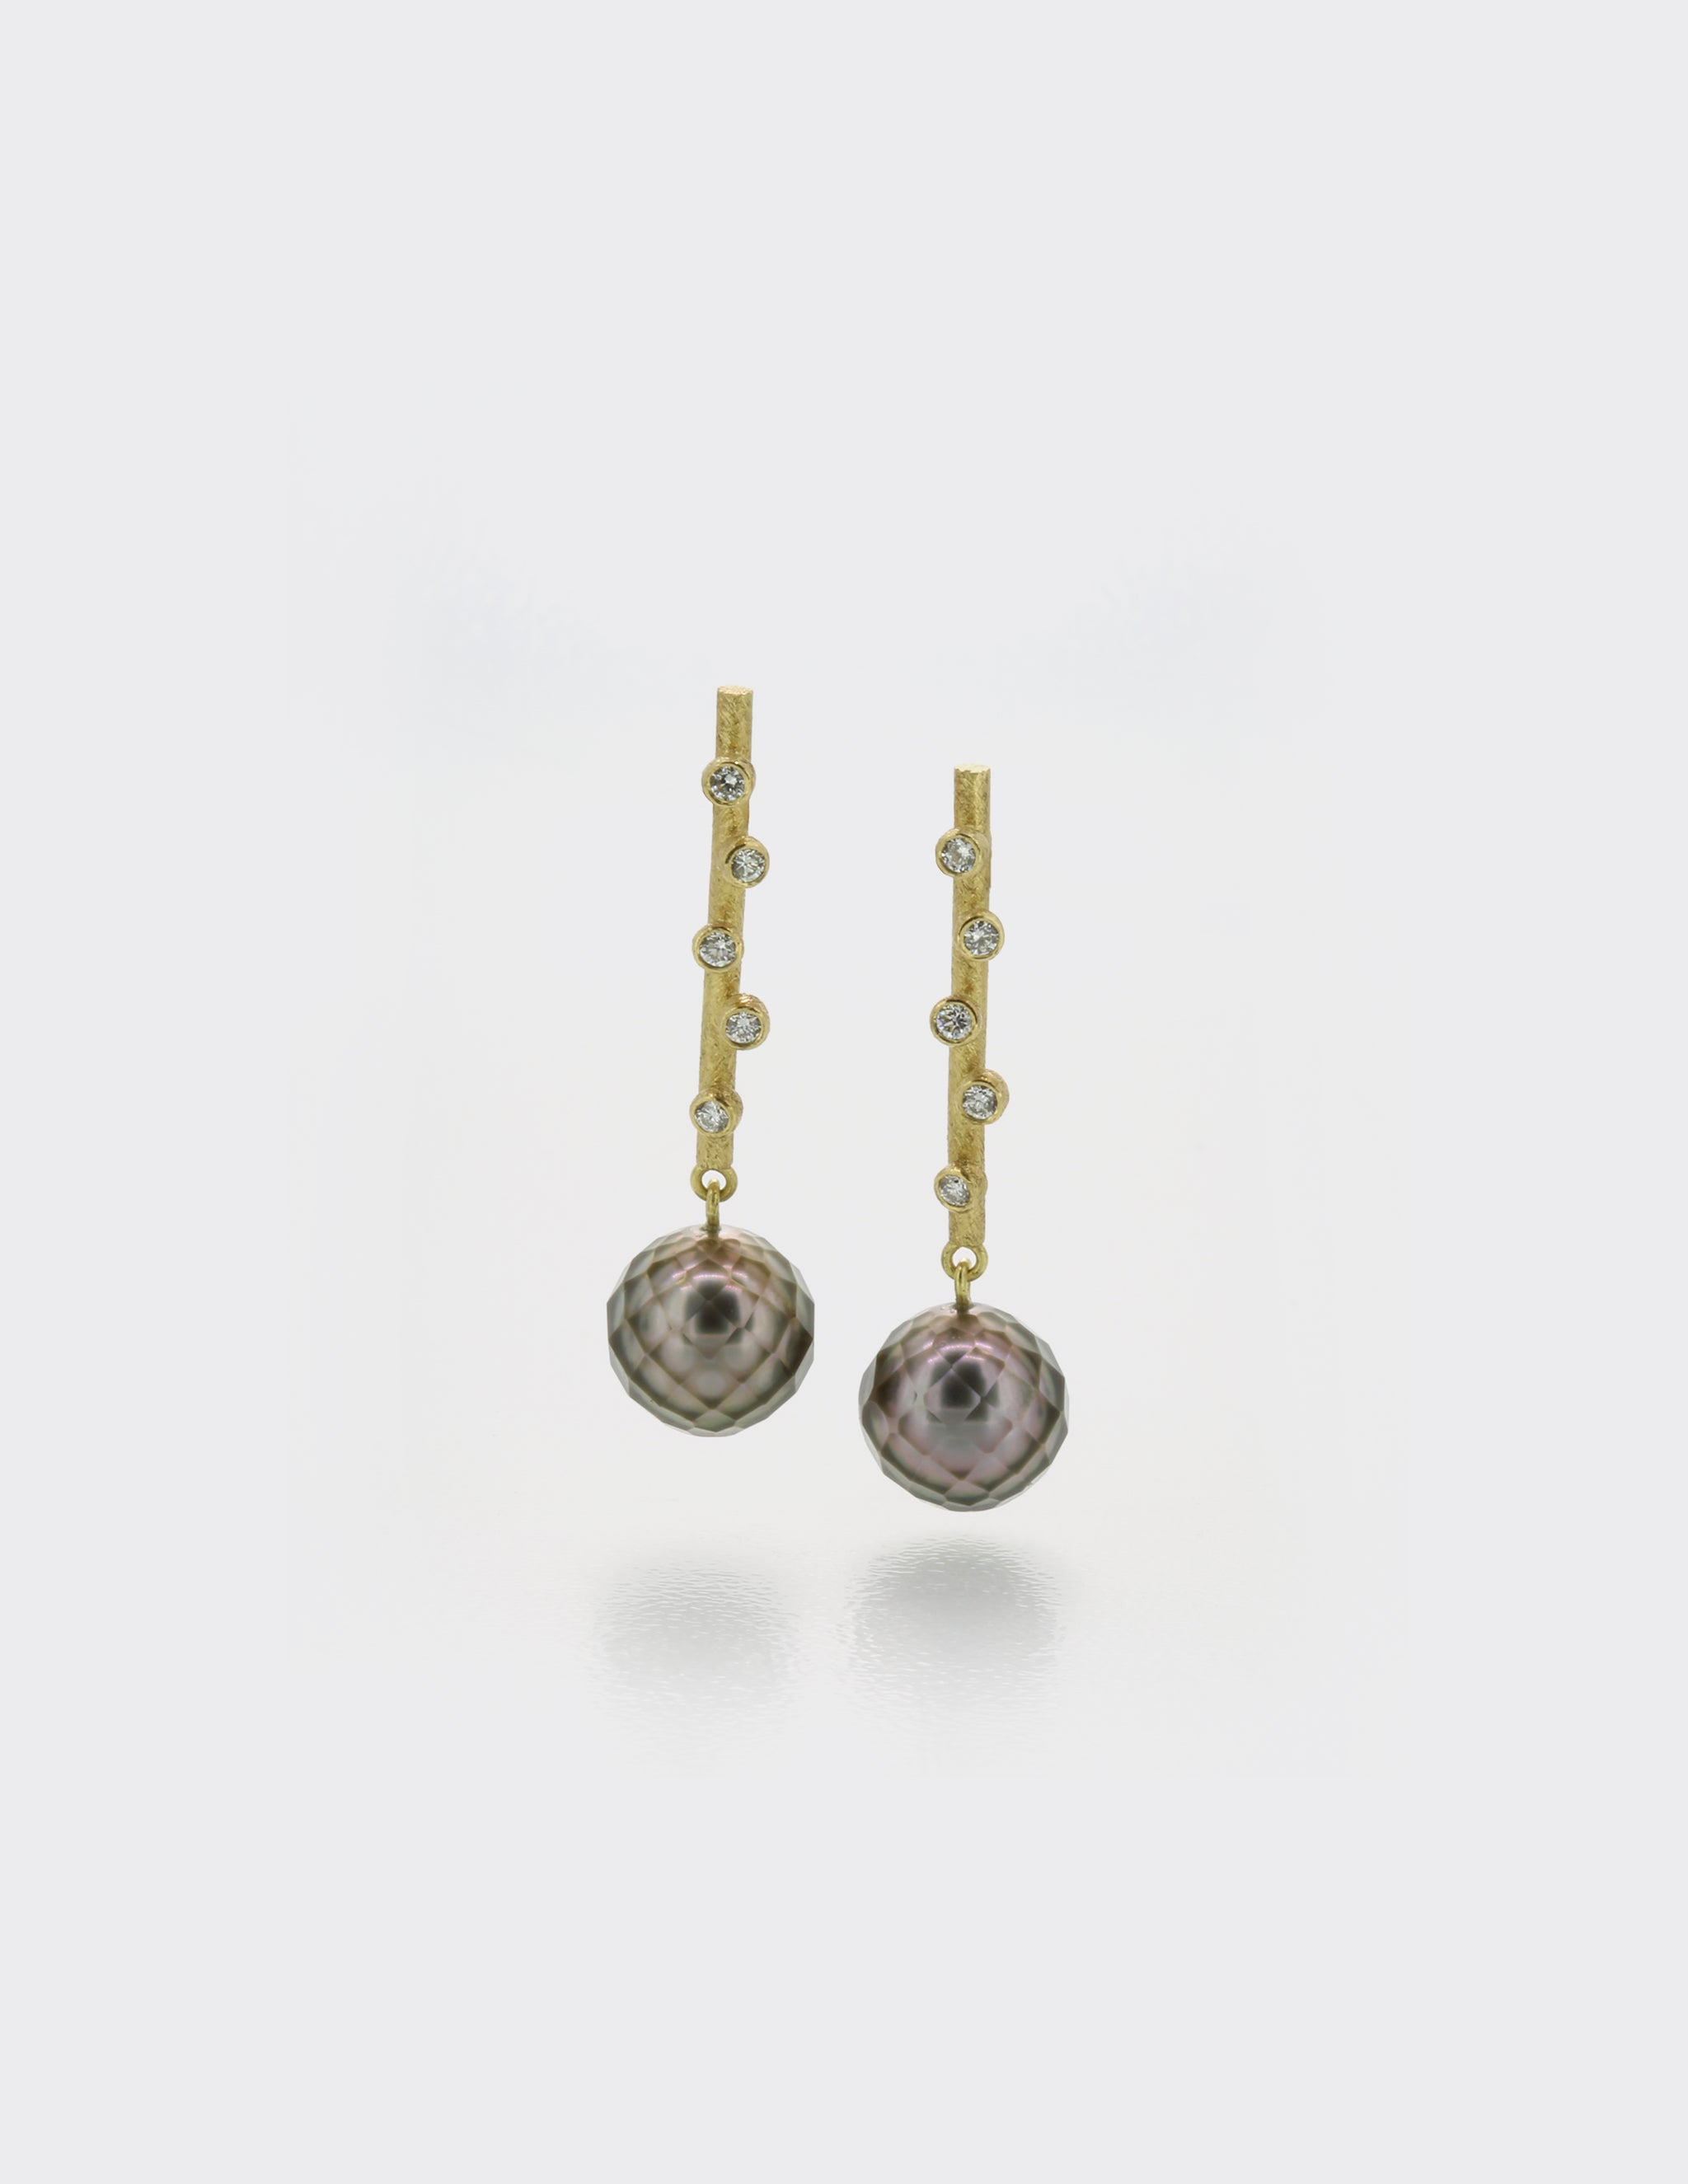 Bud ear studs with pearls and diamonds